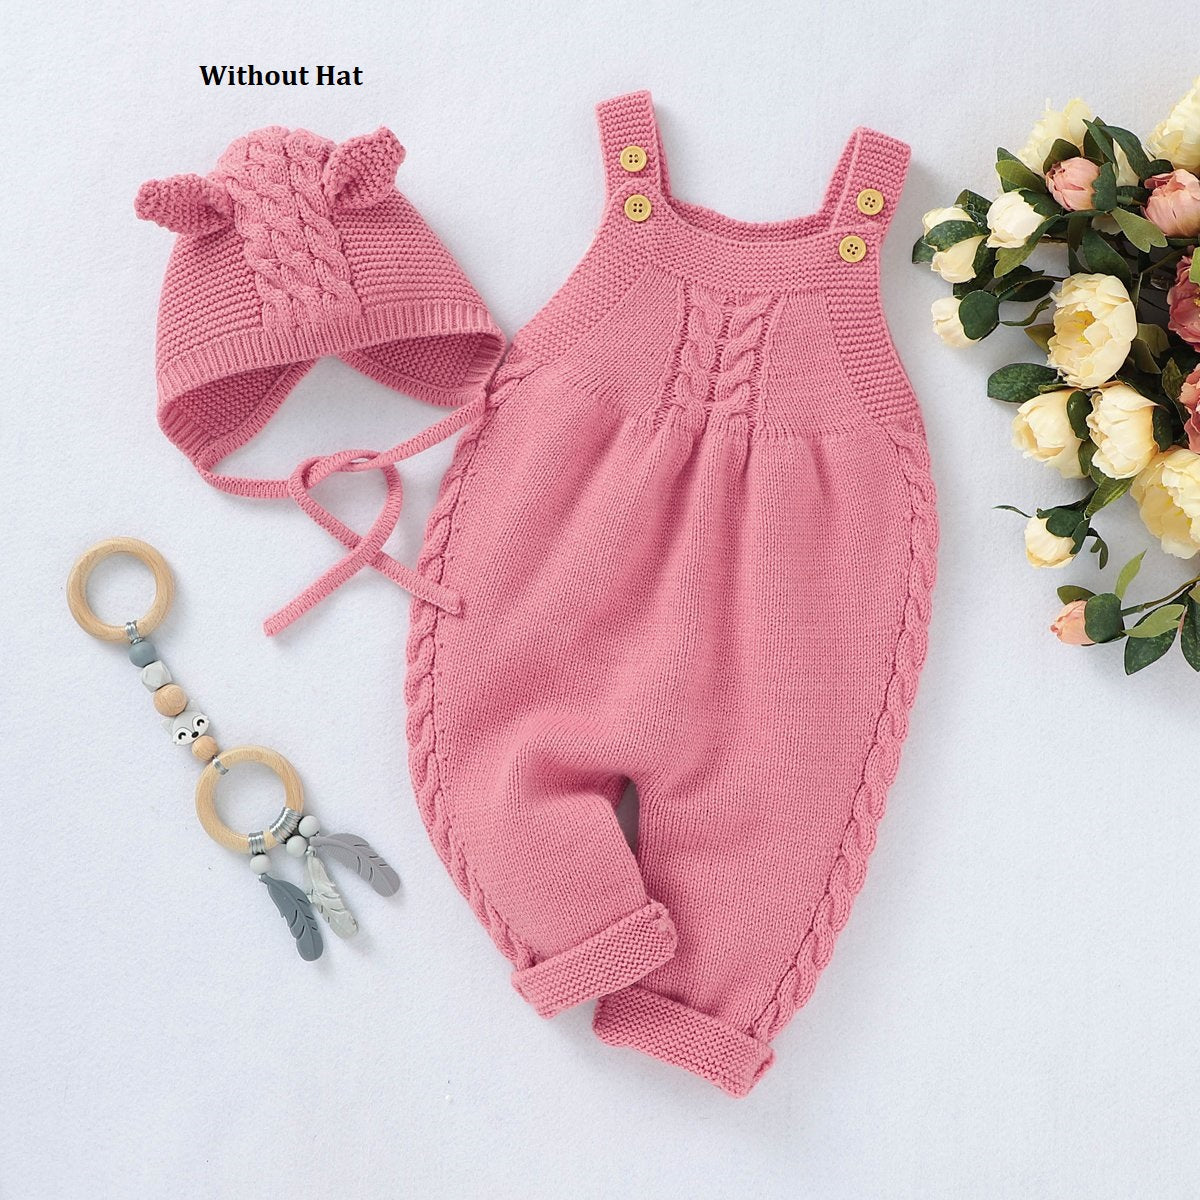 Warm Knitted Jumpsuit for Winters without Hat